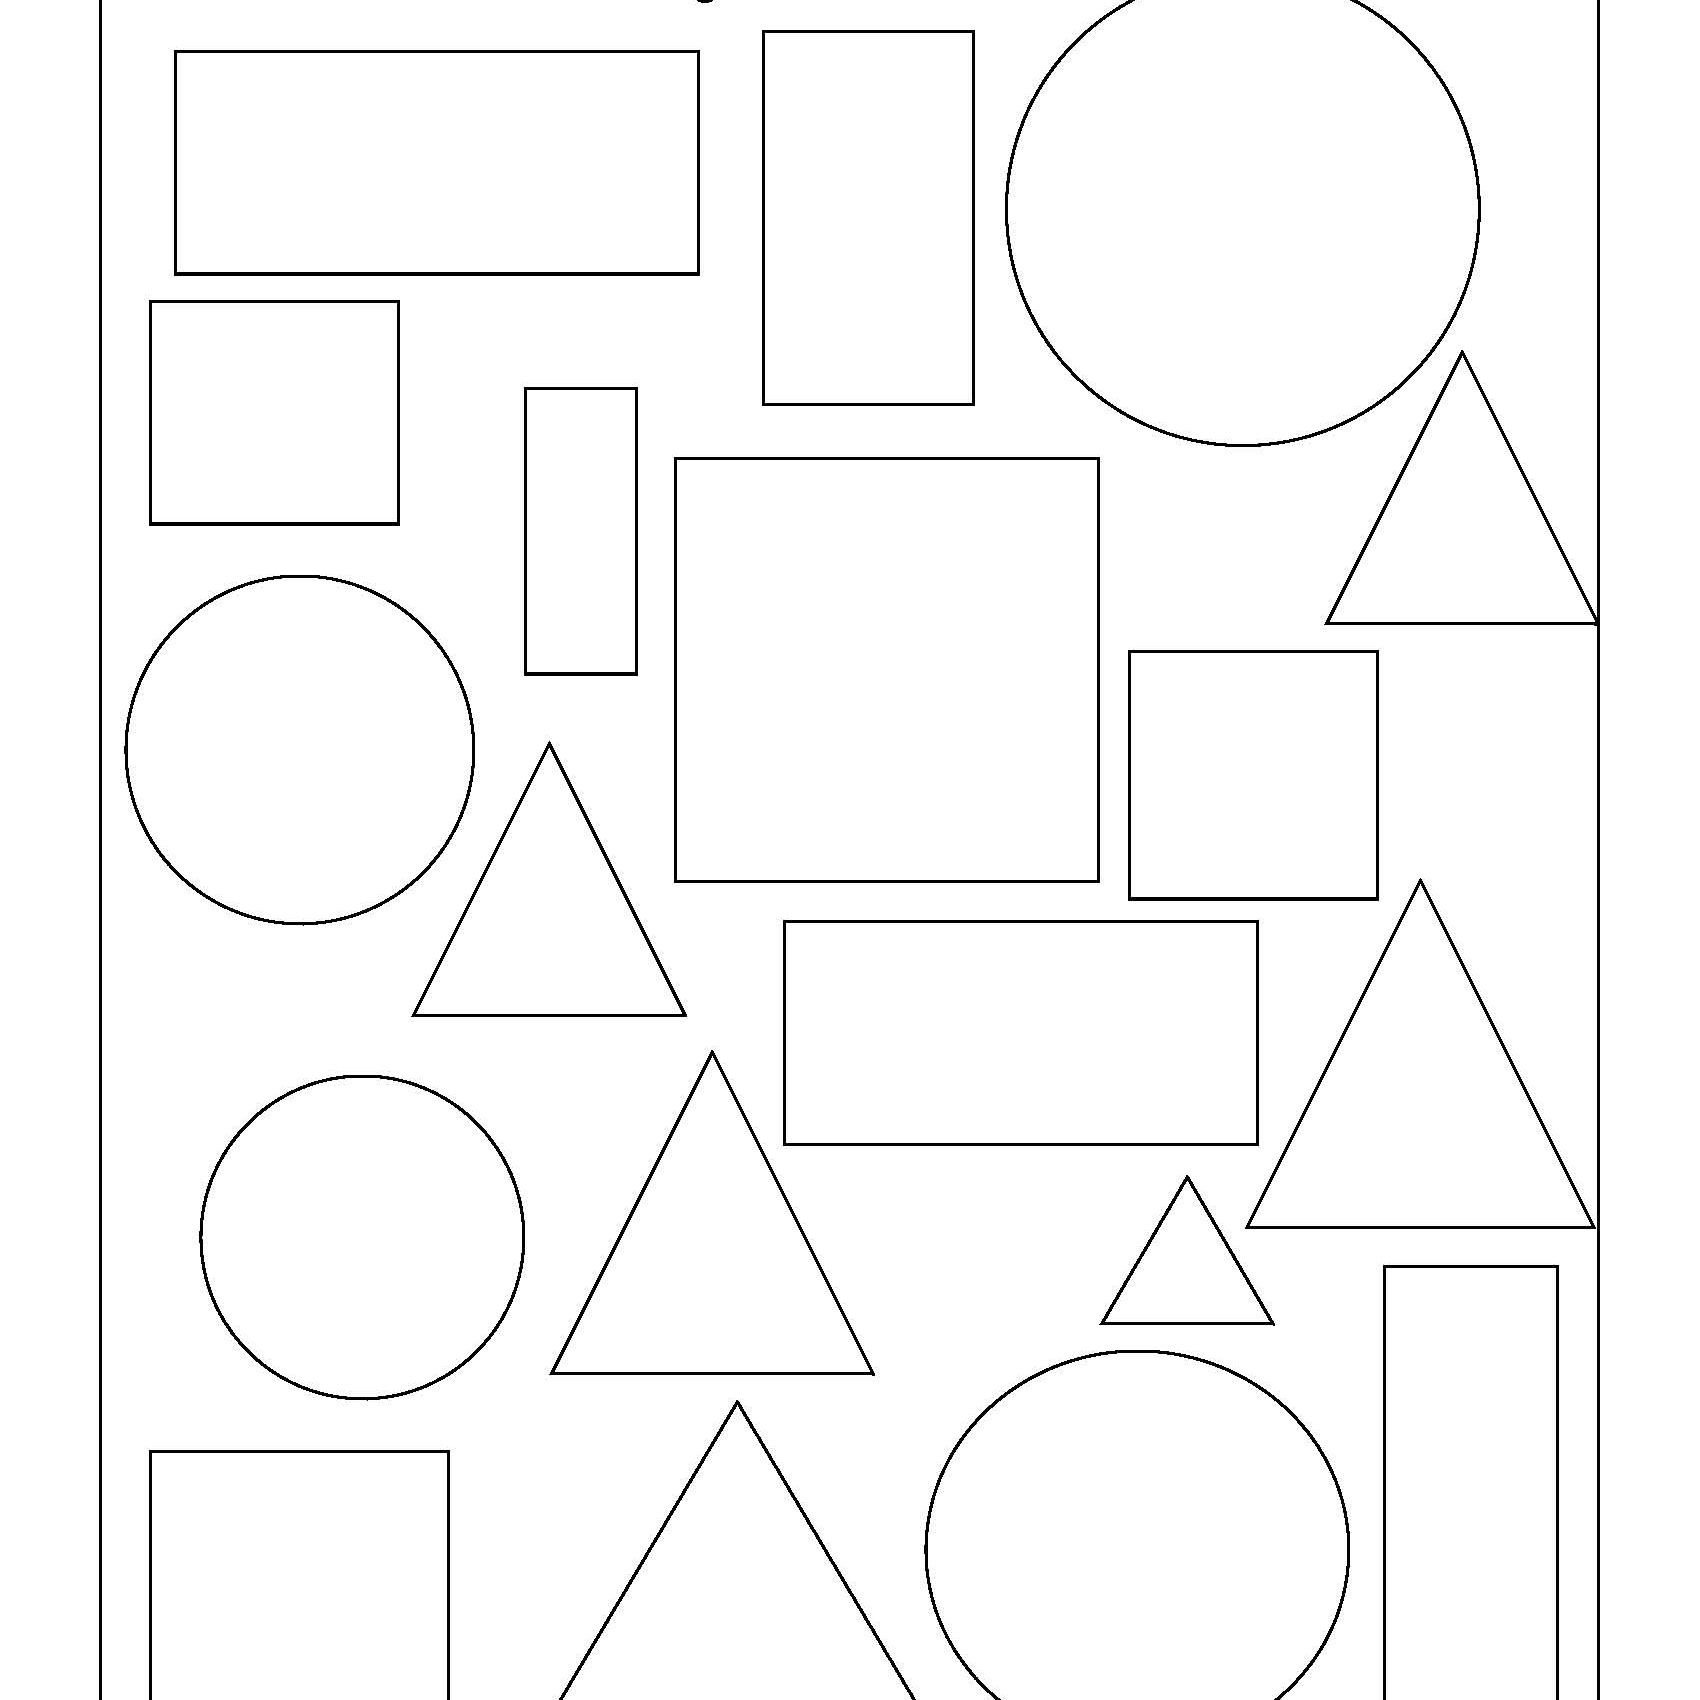 Two Dimensional Shapes Worksheets Geometry Worksheets for Students In 1st Grade